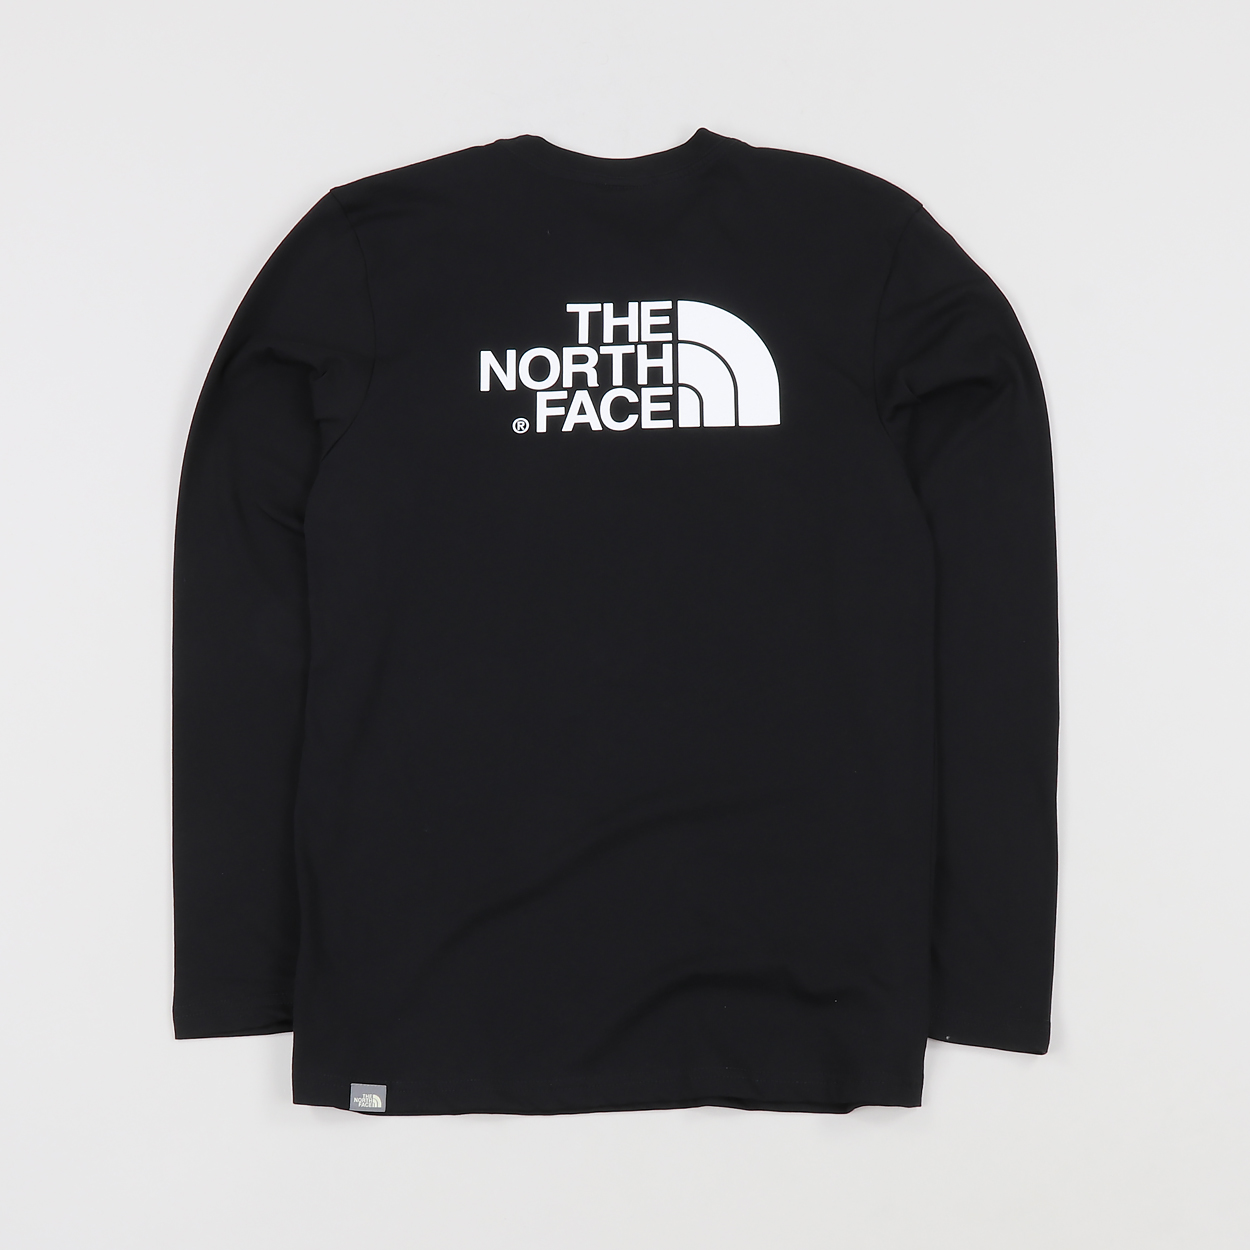 049f21662 The North Face Mens Outdoor Long Sleeve Easy T-Shirt Black White £17.00